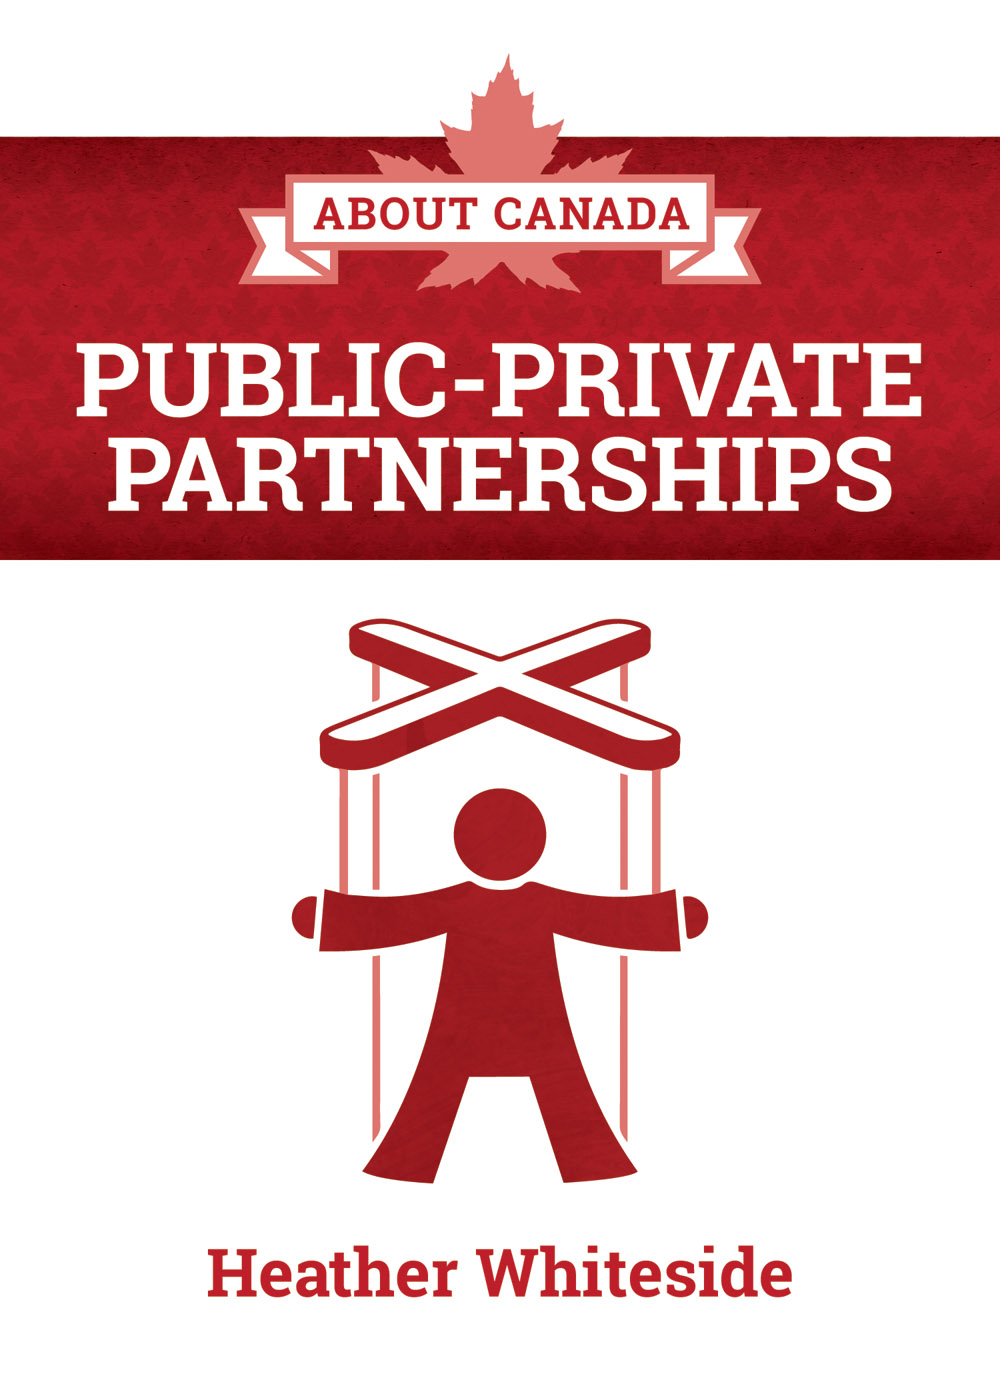 About nada: Public-Private Partnerships